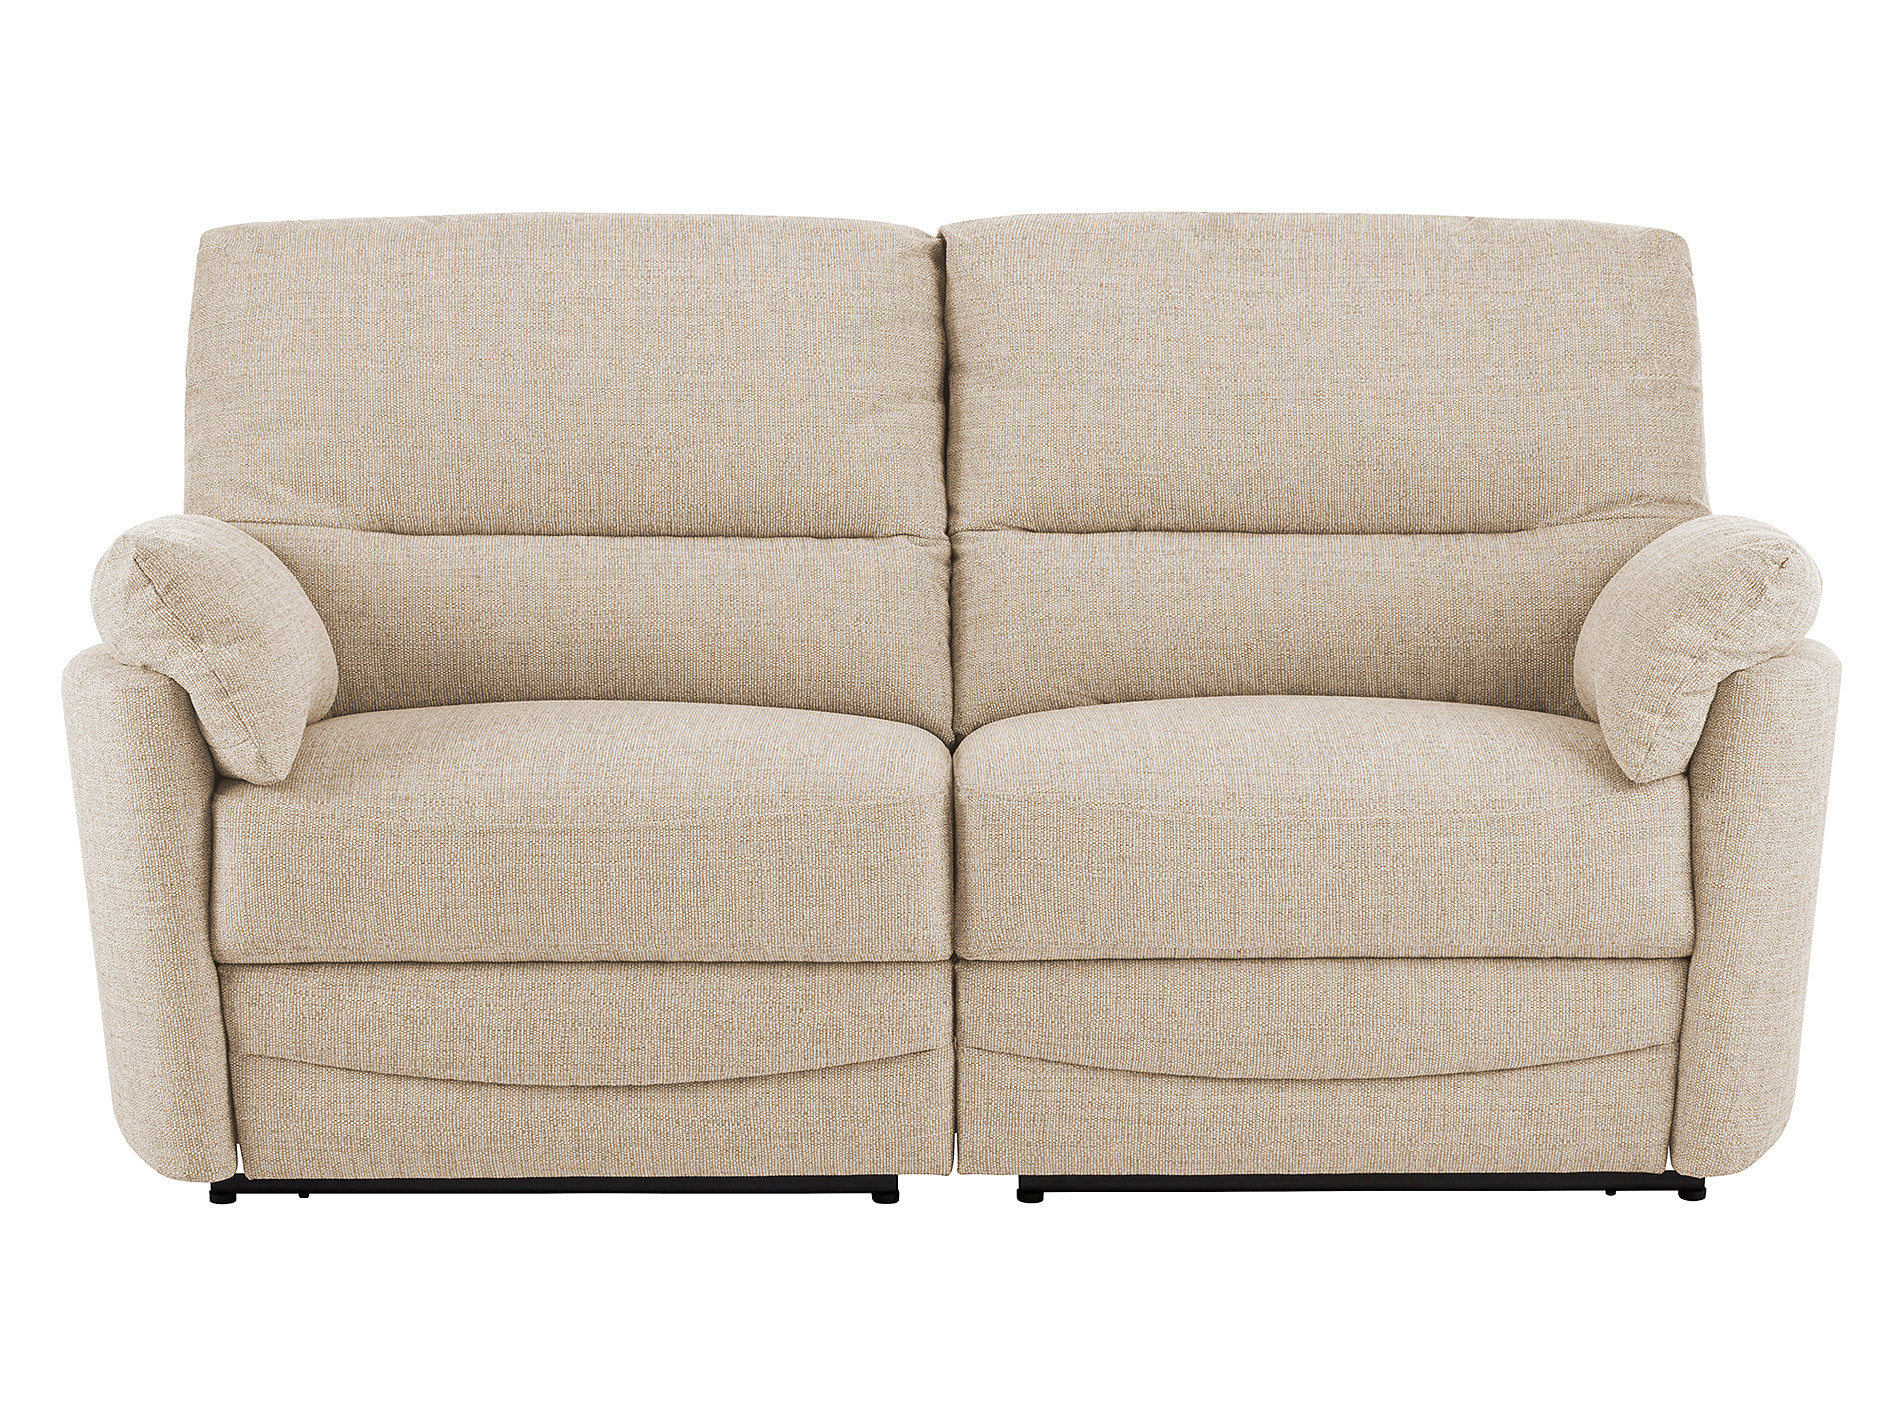 sutton large sofa with manual recliners in barley beige. Black Bedroom Furniture Sets. Home Design Ideas